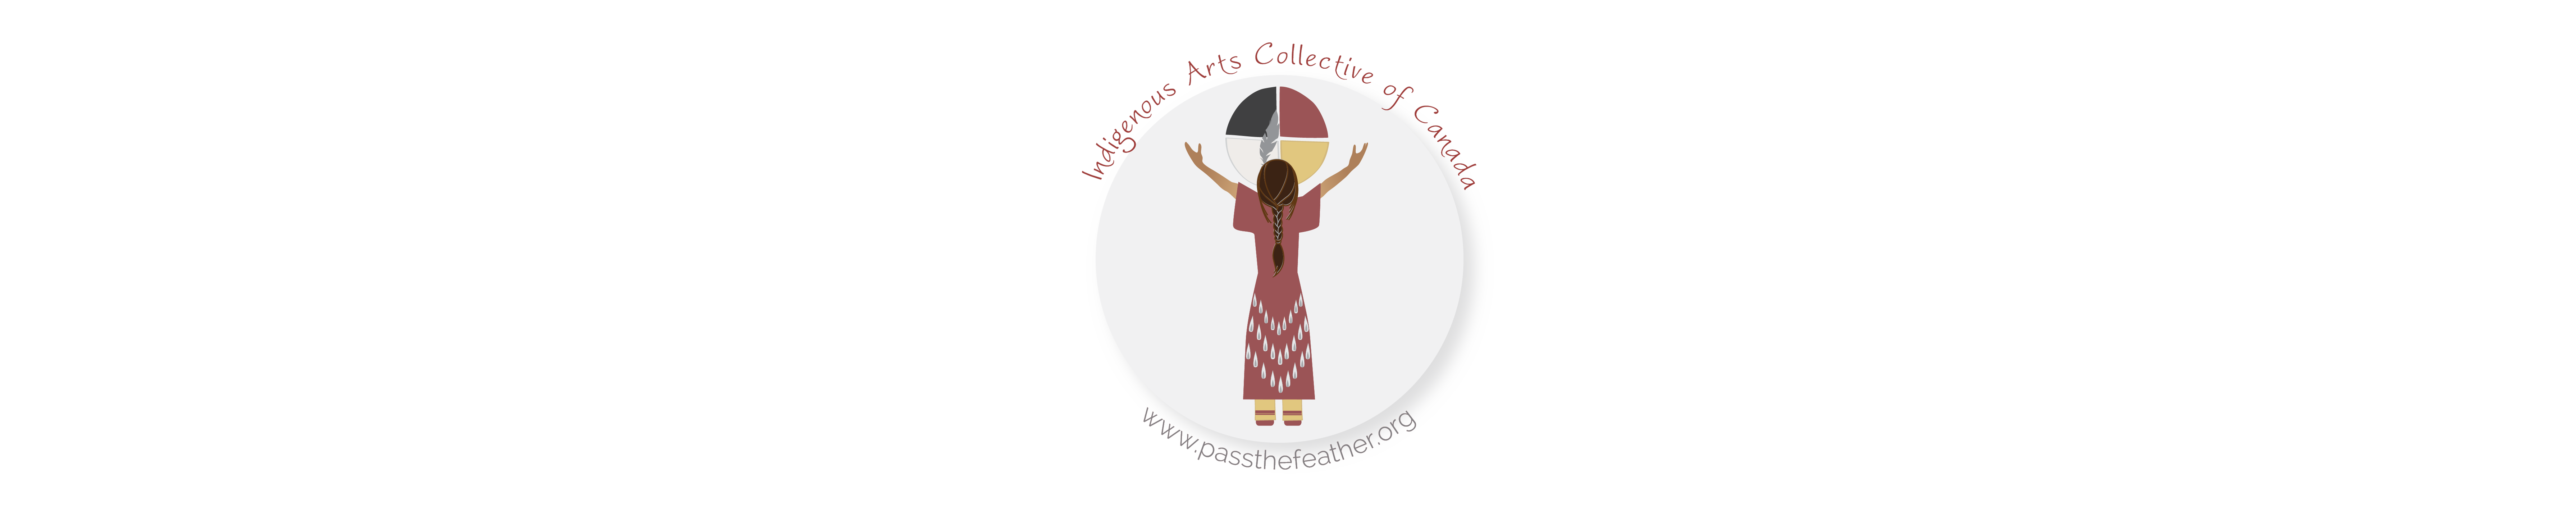 Tanya Keech, craft maker, indigenous artist. Tanya Keech, Indigenous Artist. Tanya Keech, Indigenous artist, first nations, craft maker, crafts, indigenous arts collective of canada, pass the feather.